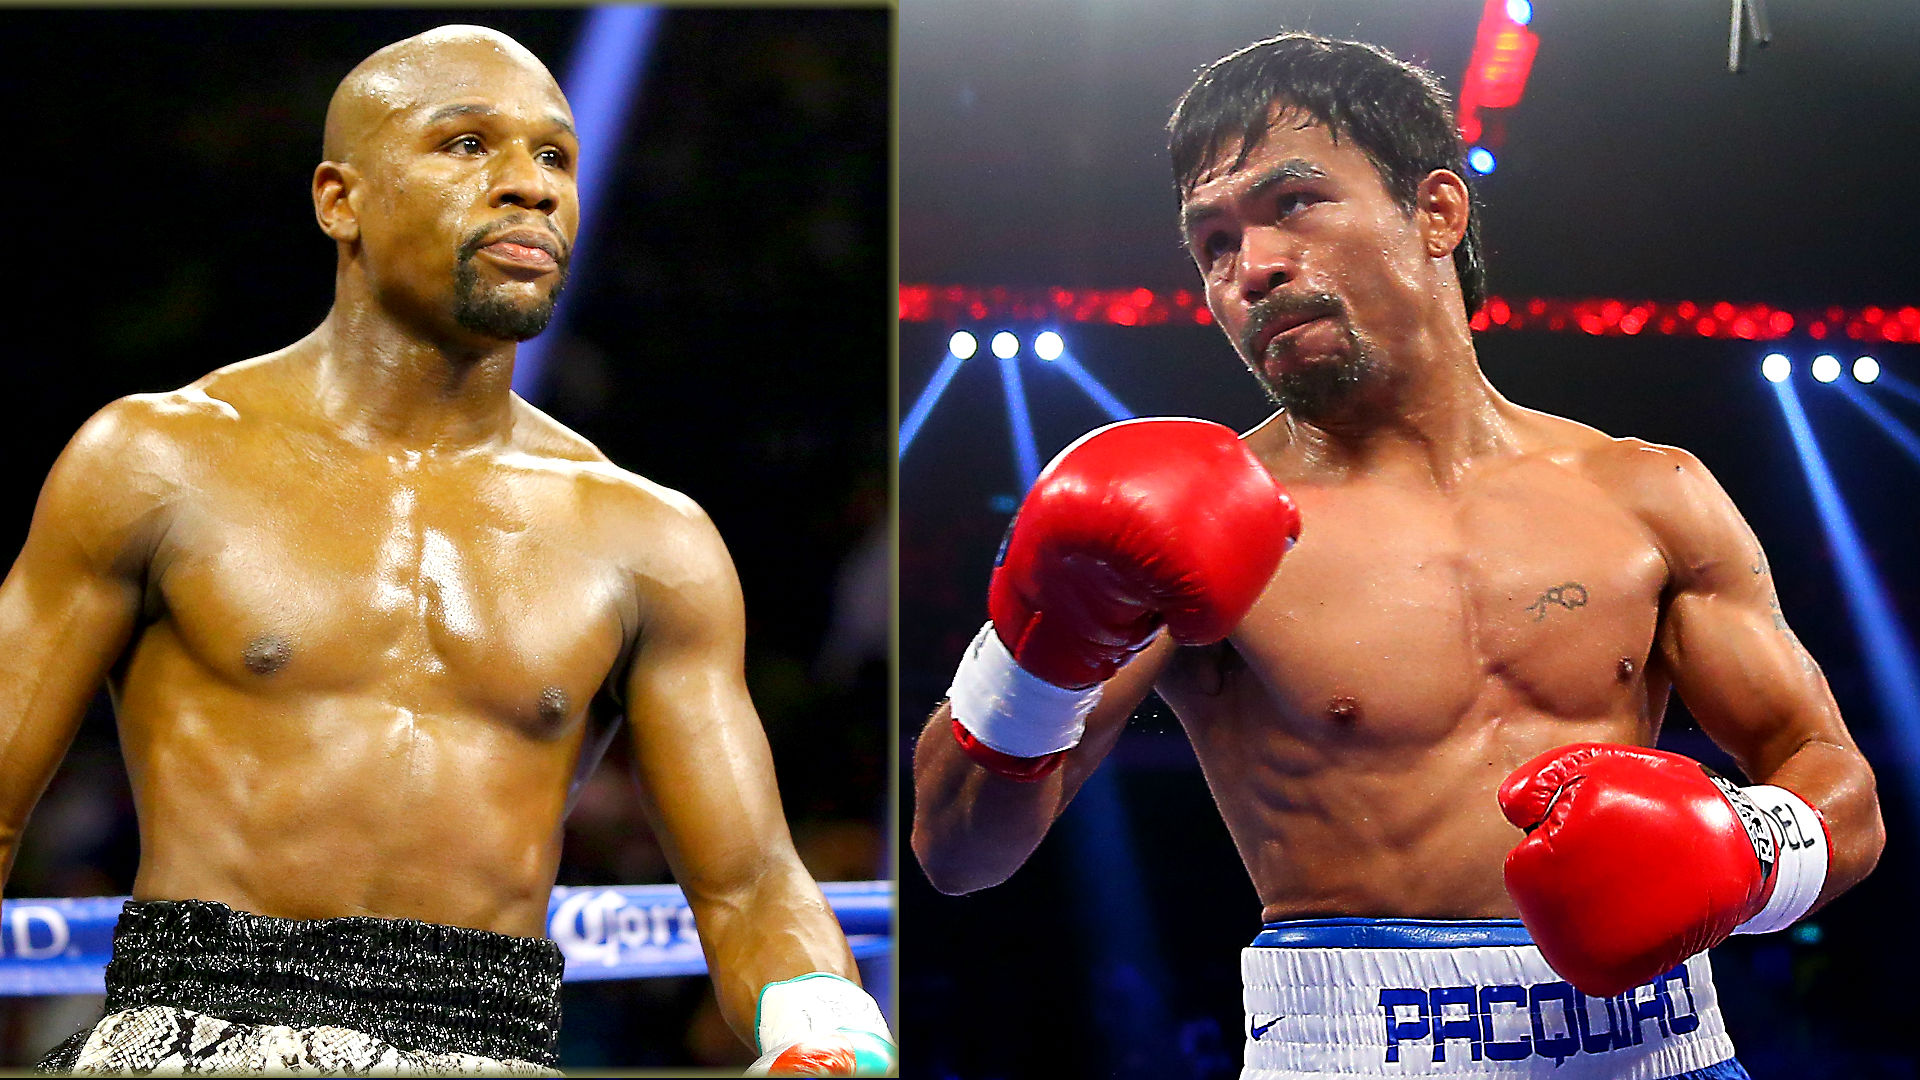 mayweather-pacquiao012315-getty-ftr.jpg